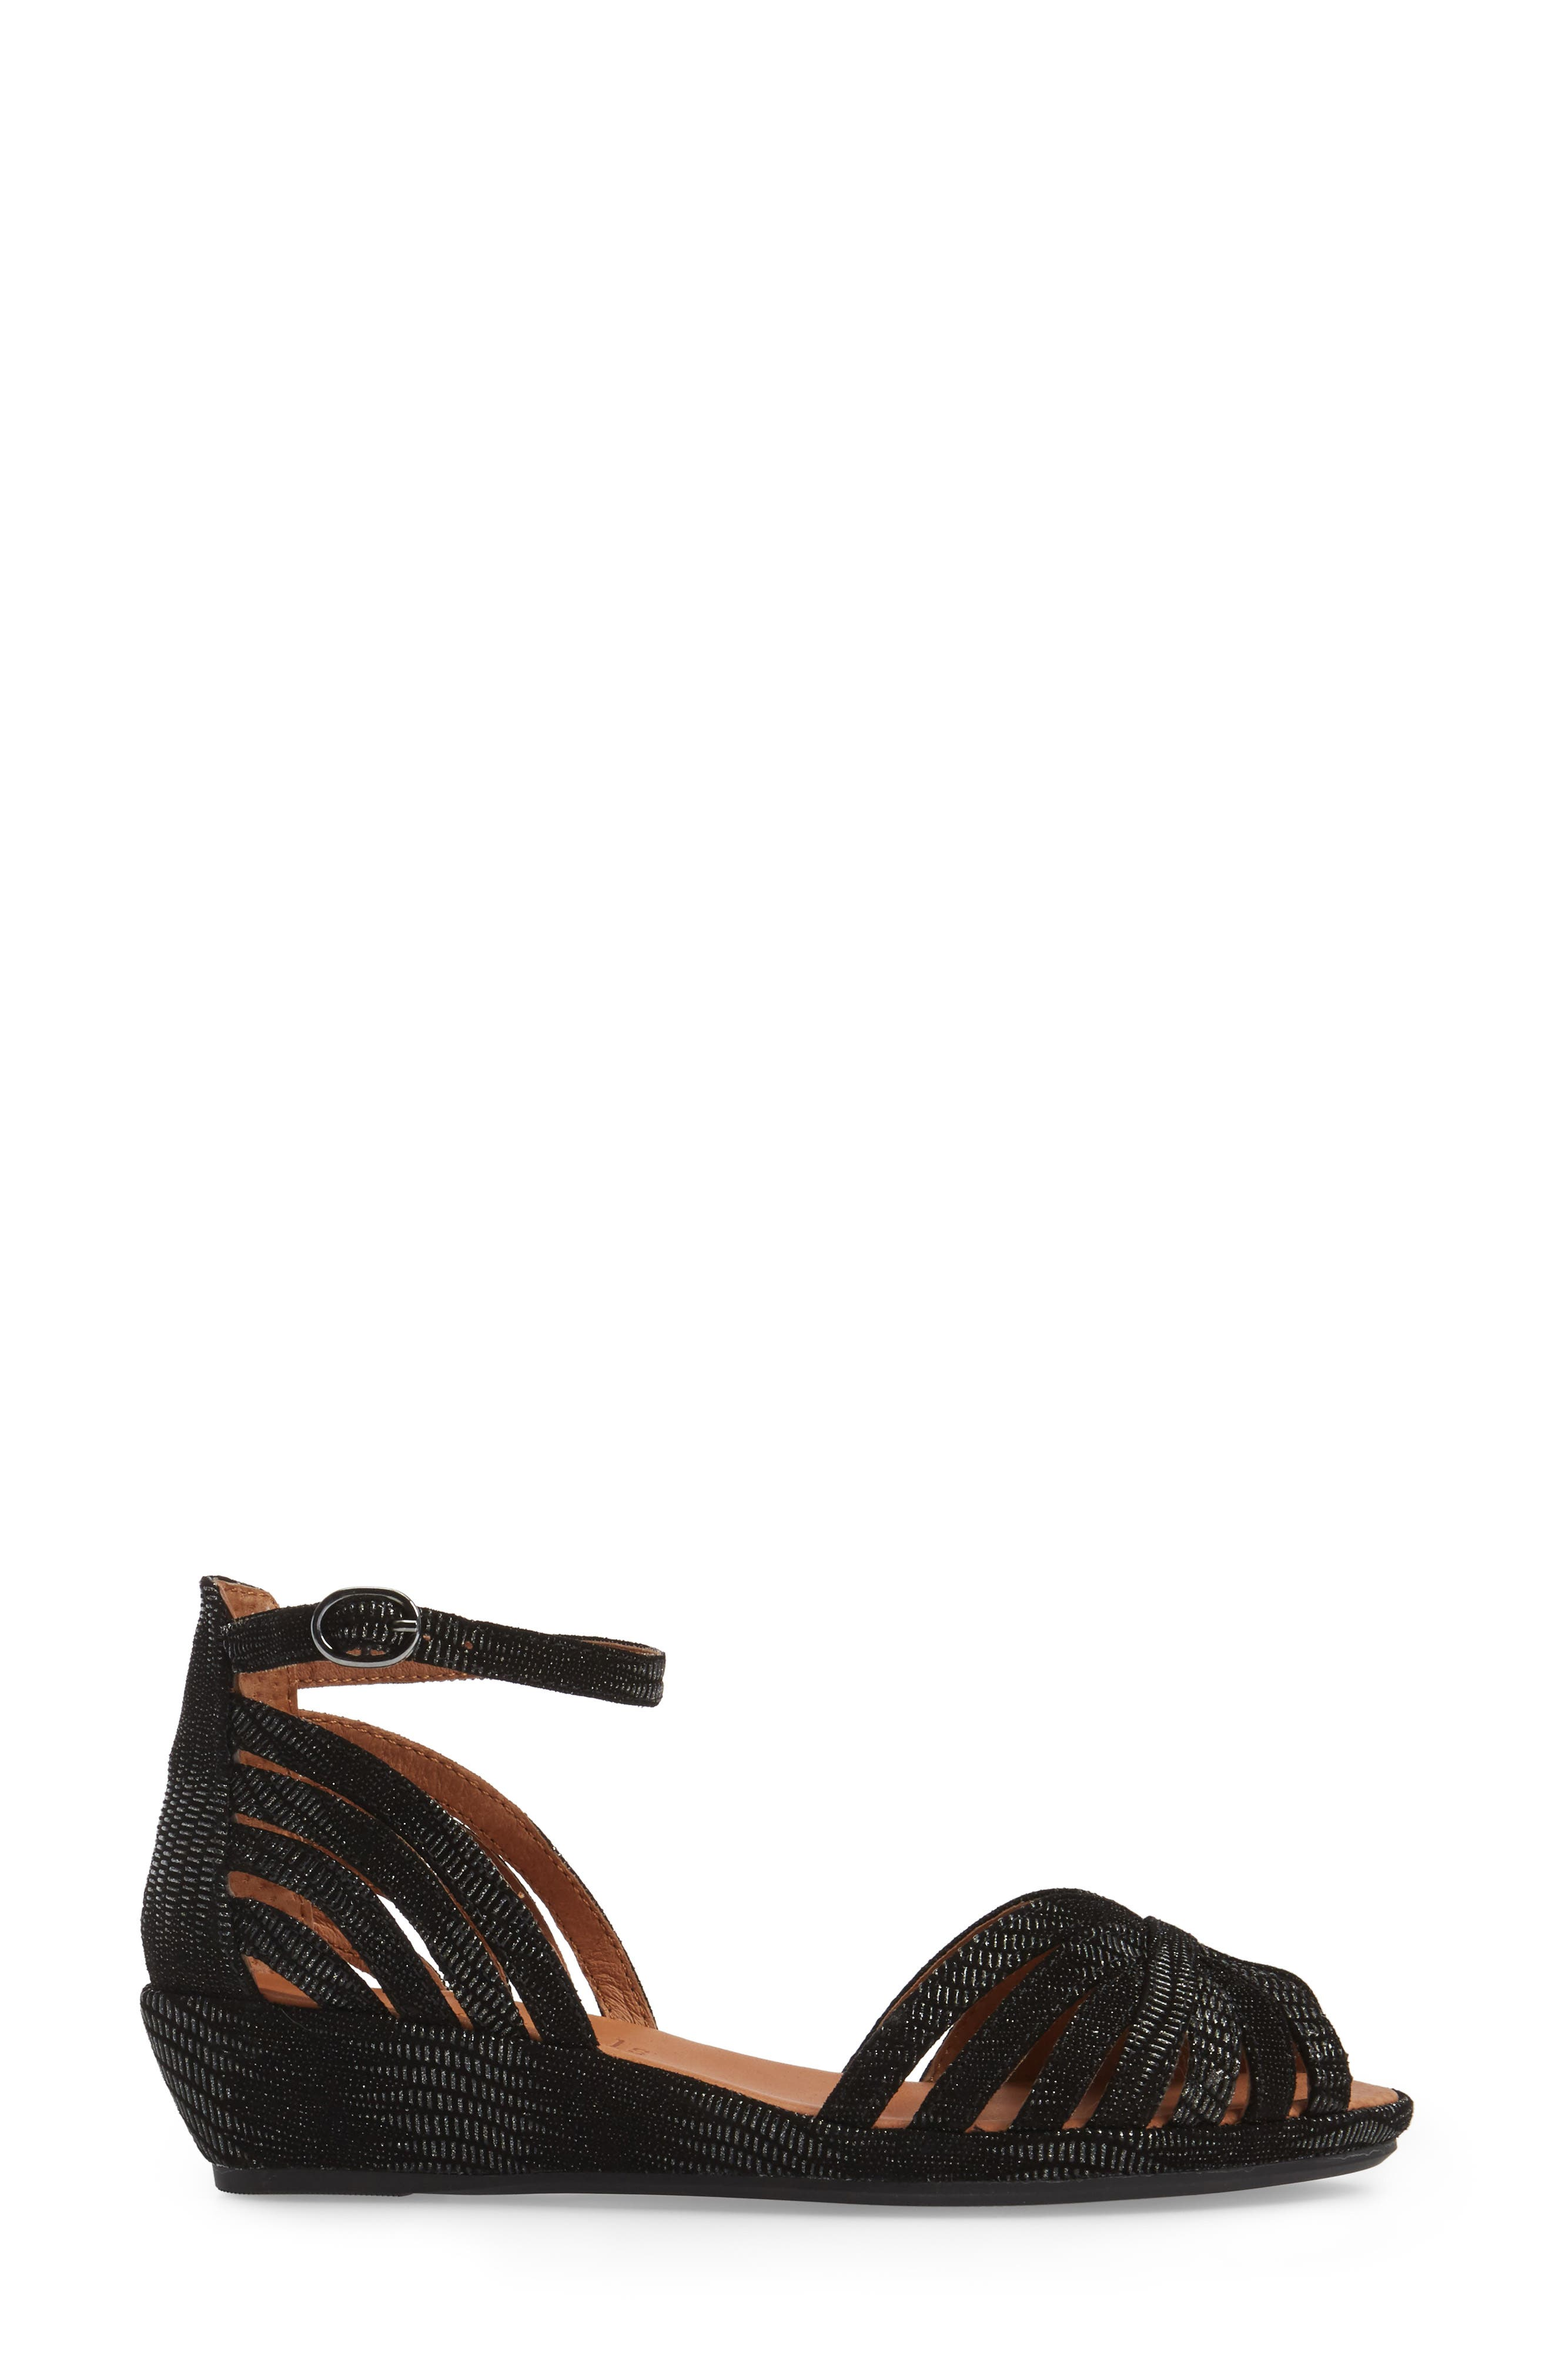 by Kenneth Cole 'Leah' Peep Toe Wedge Sandal,                             Alternate thumbnail 3, color,                             Black/ Black Leather